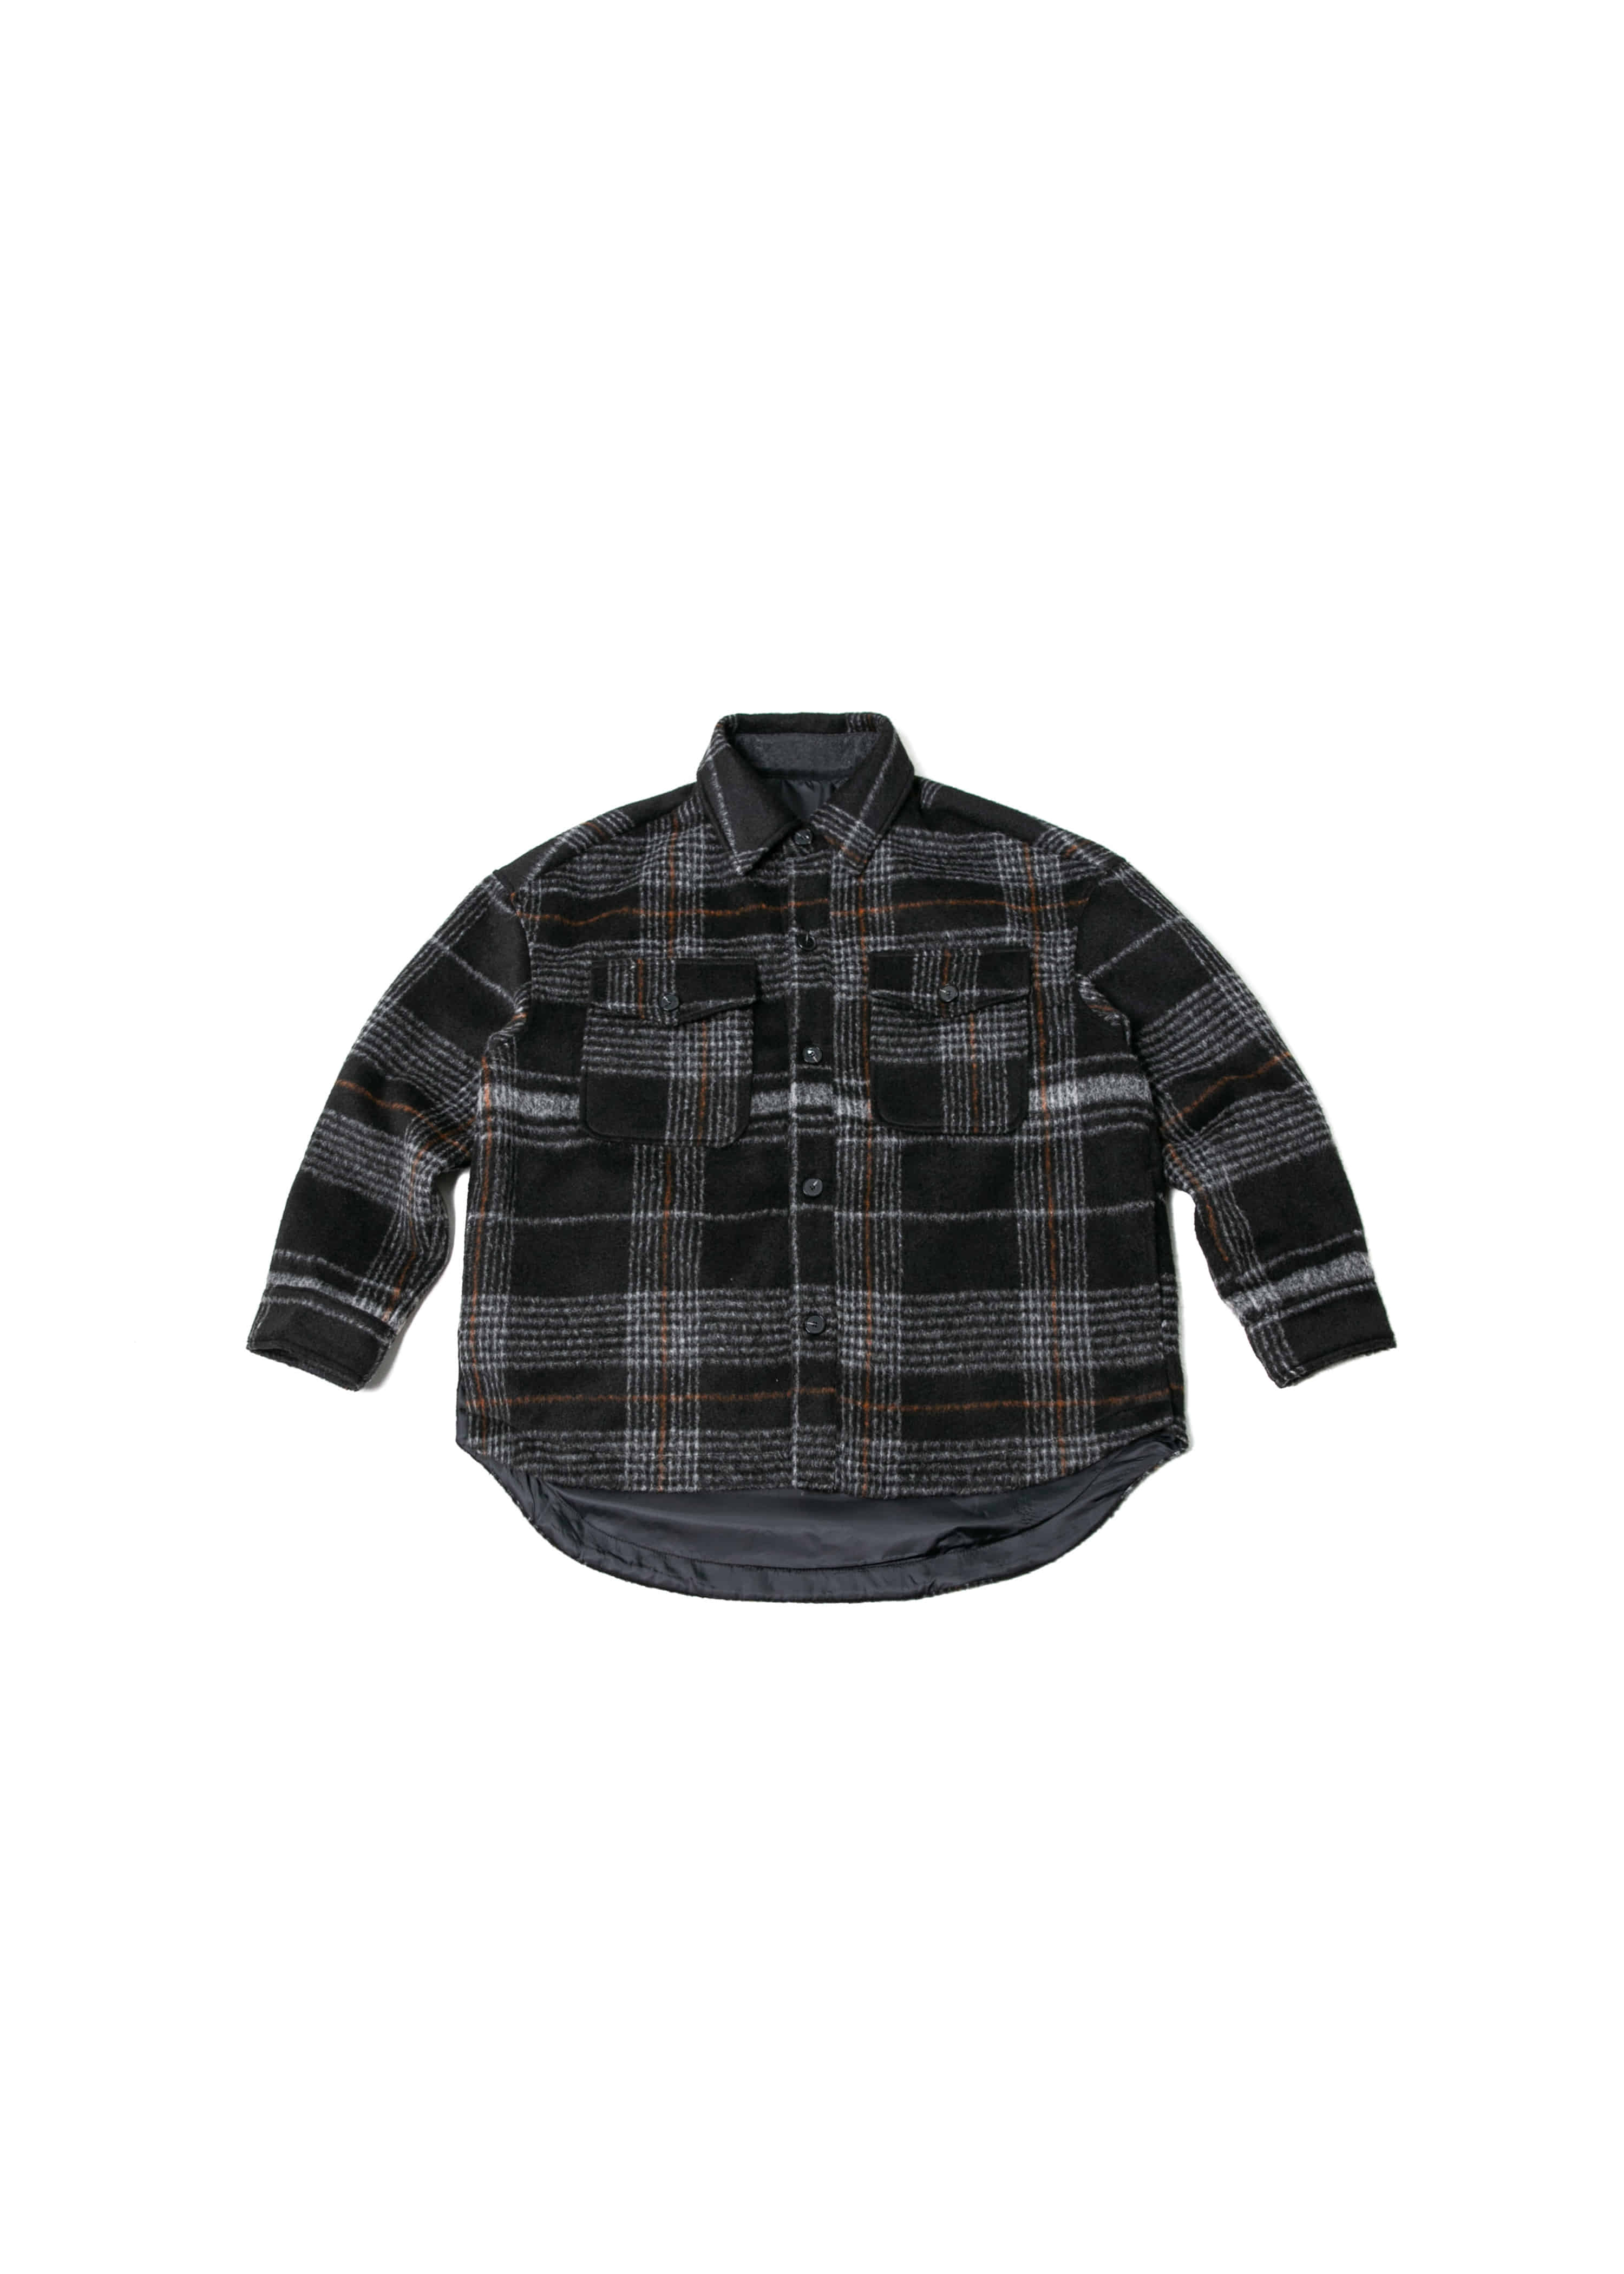 Wool Check Over Shirts Jacket - Black